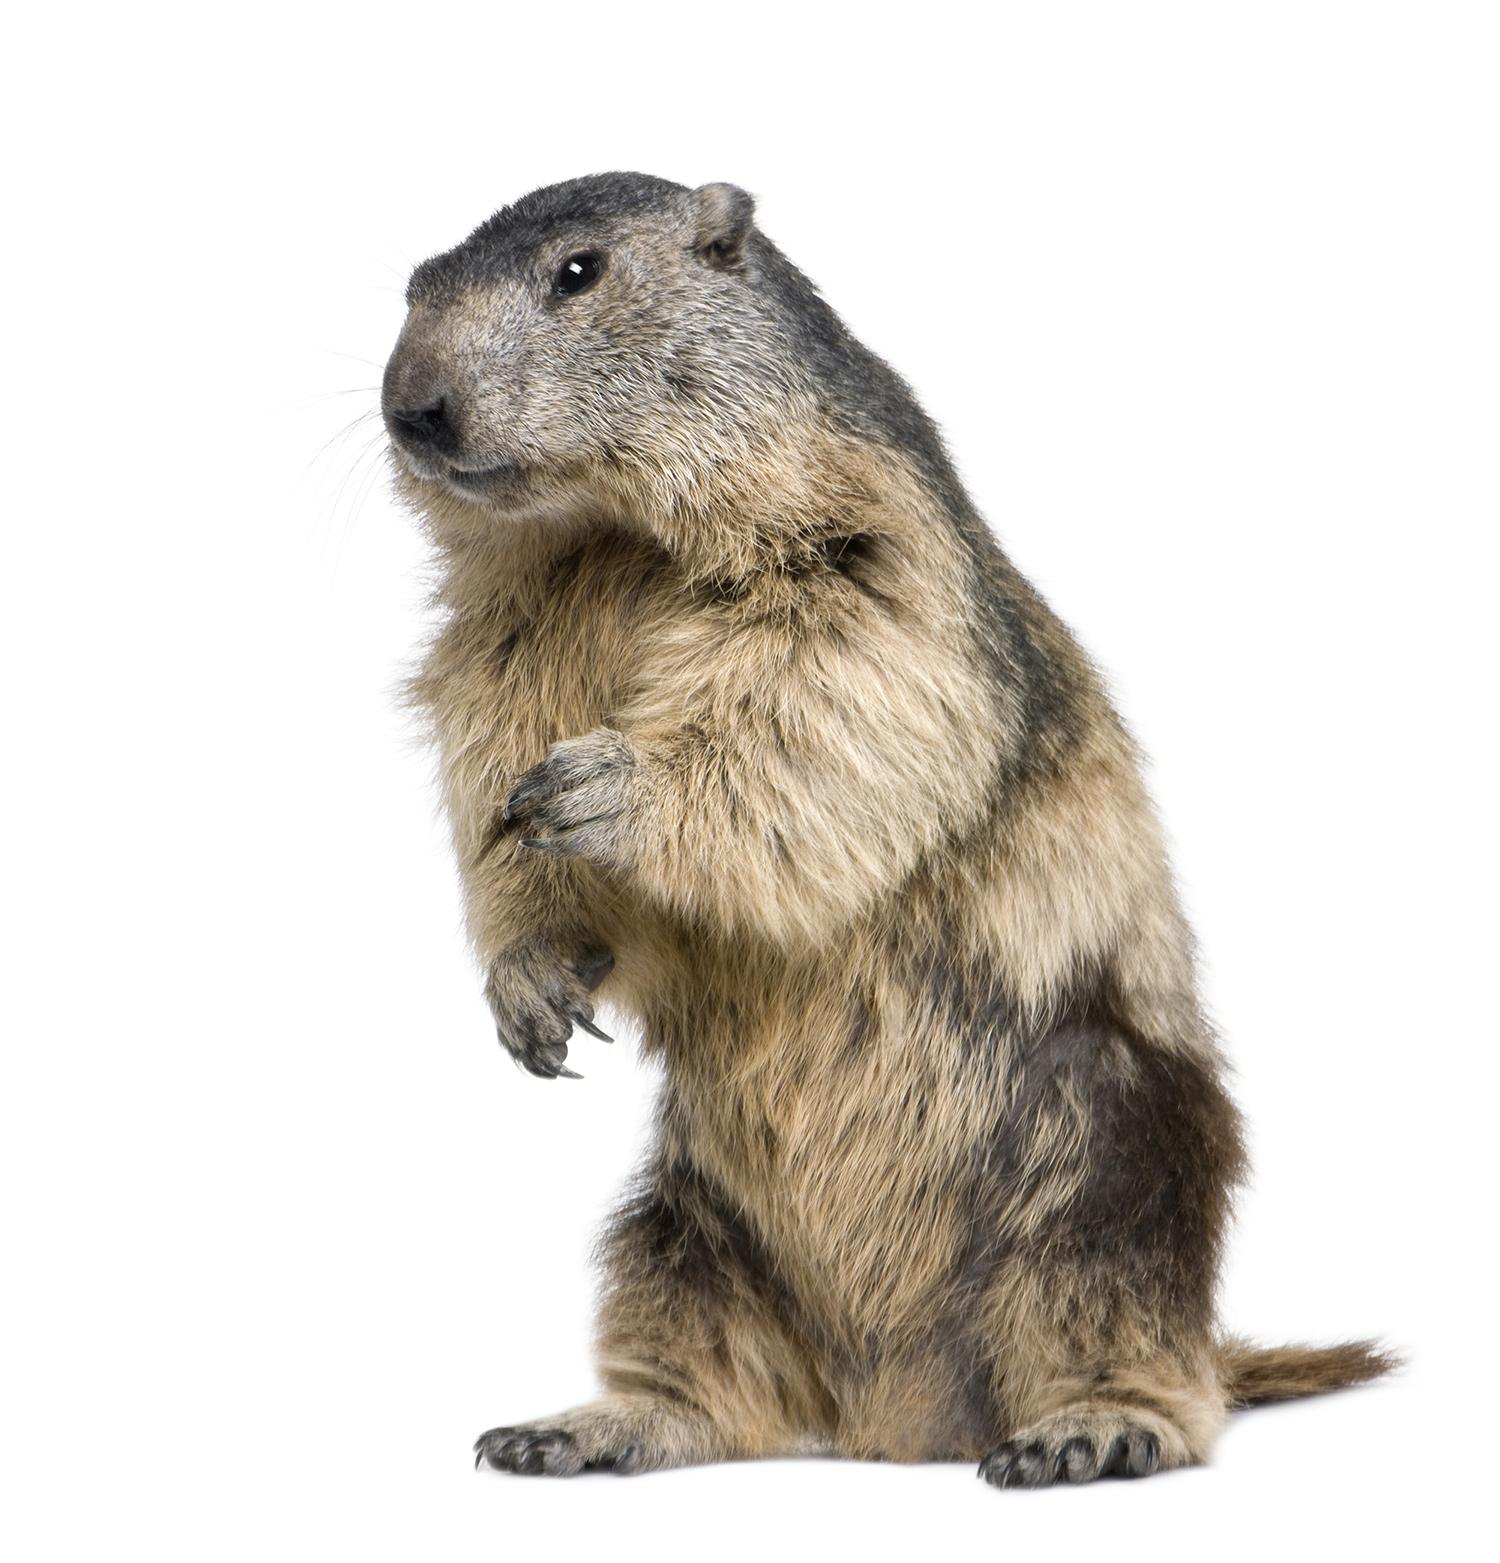 A groundhog on white background.